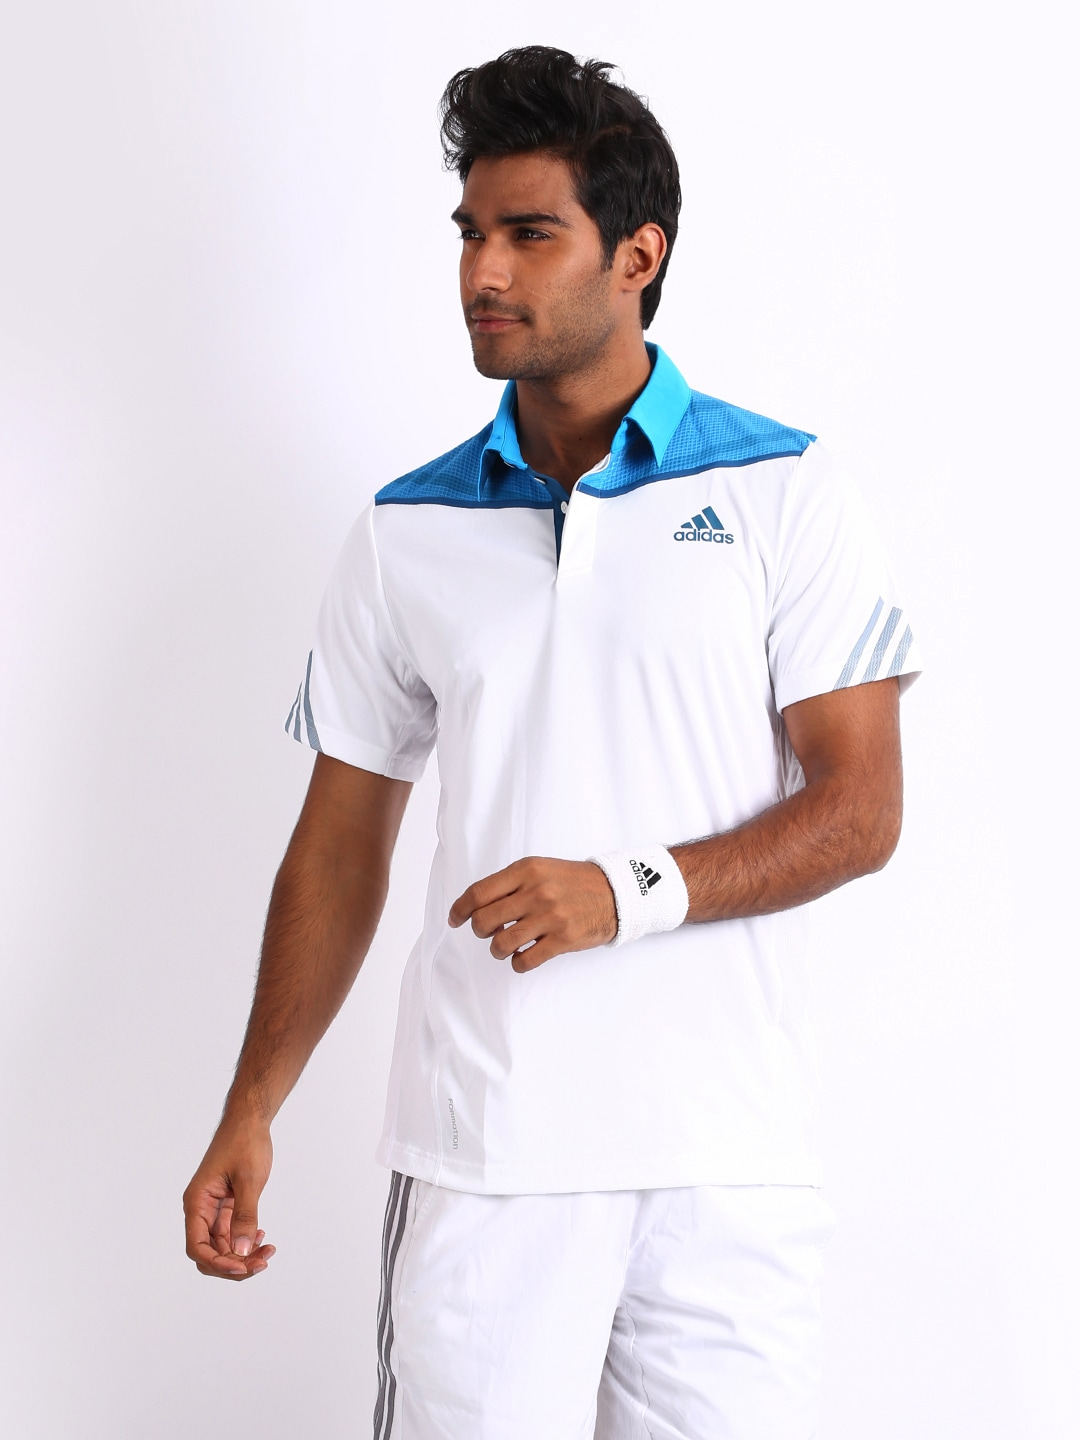 Adidas Adidas Men White Polo T-Shirt (Multicolor)